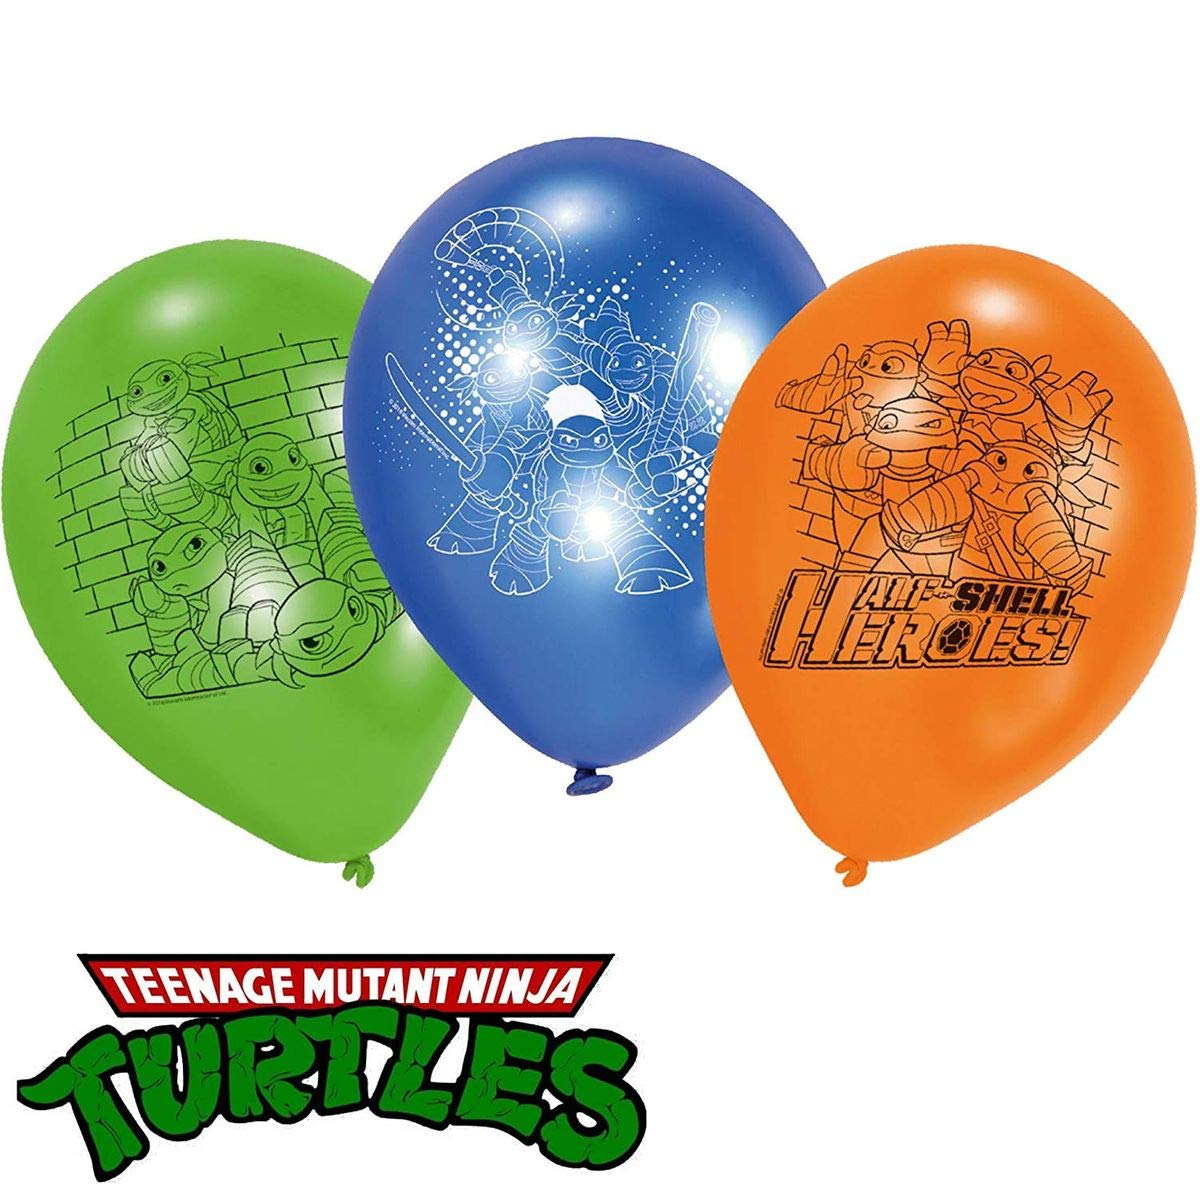 6 Globos de látex * Teenage Mutant Ninja Turtles * como ...